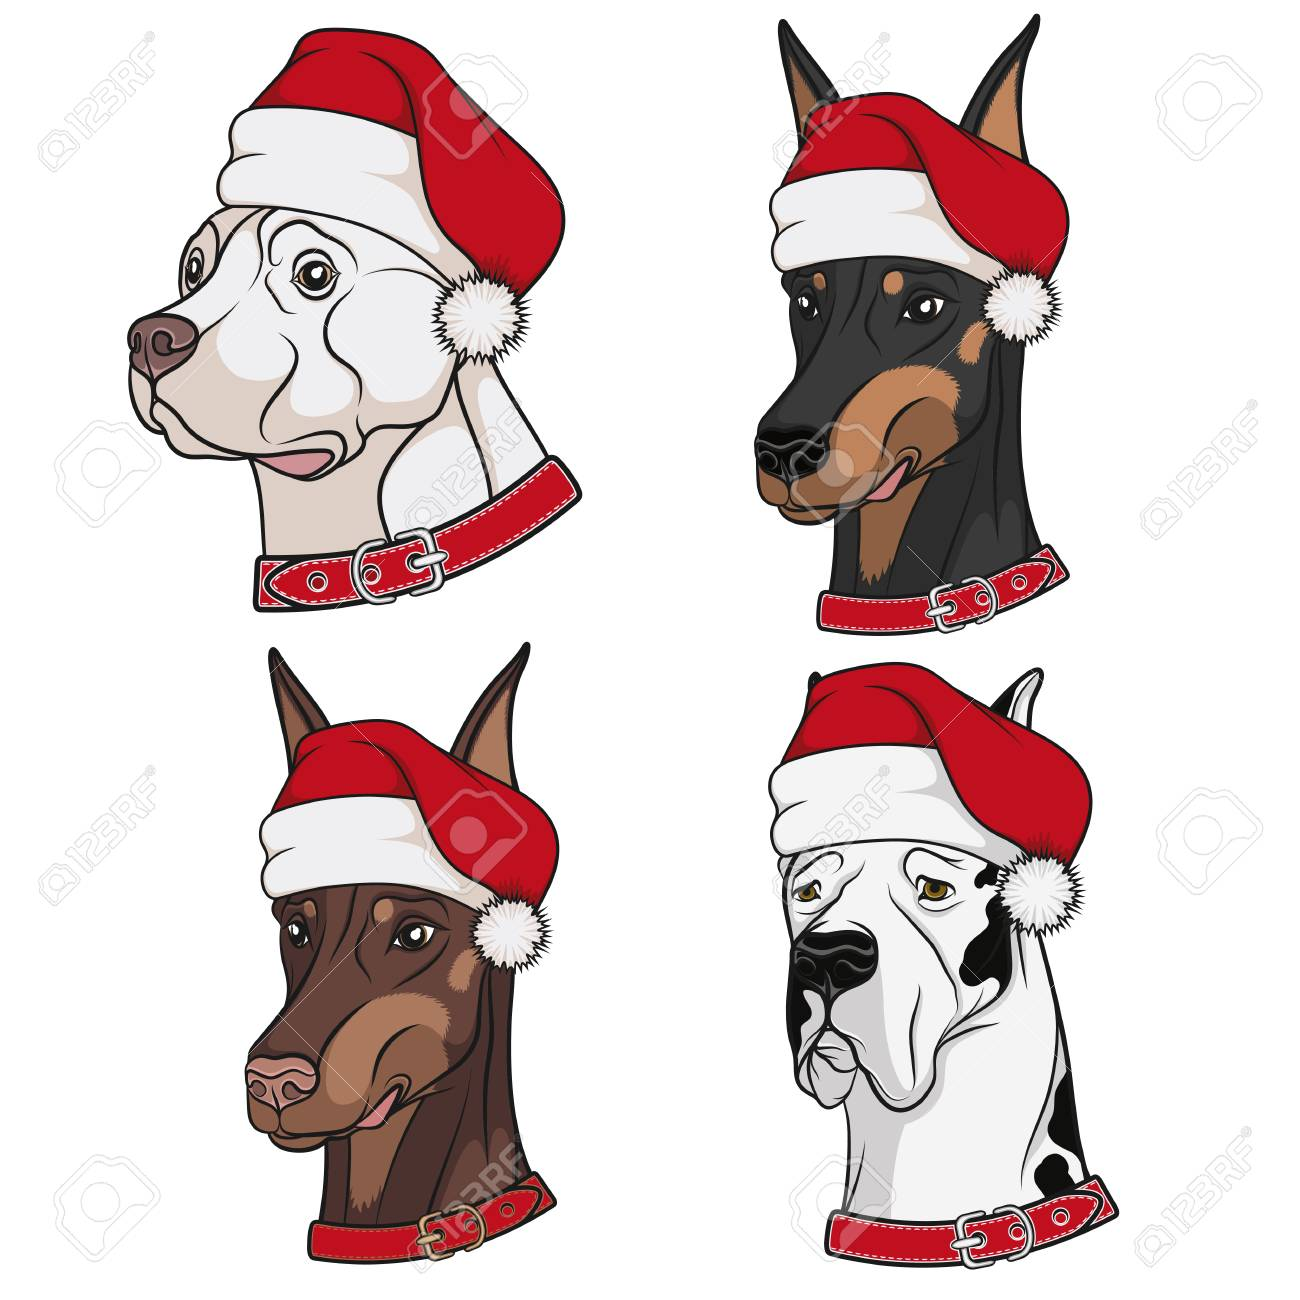 Christmas Hats For Dogs.Set Of Illustrations With Cute Dogs In Christmas Hats Isolated